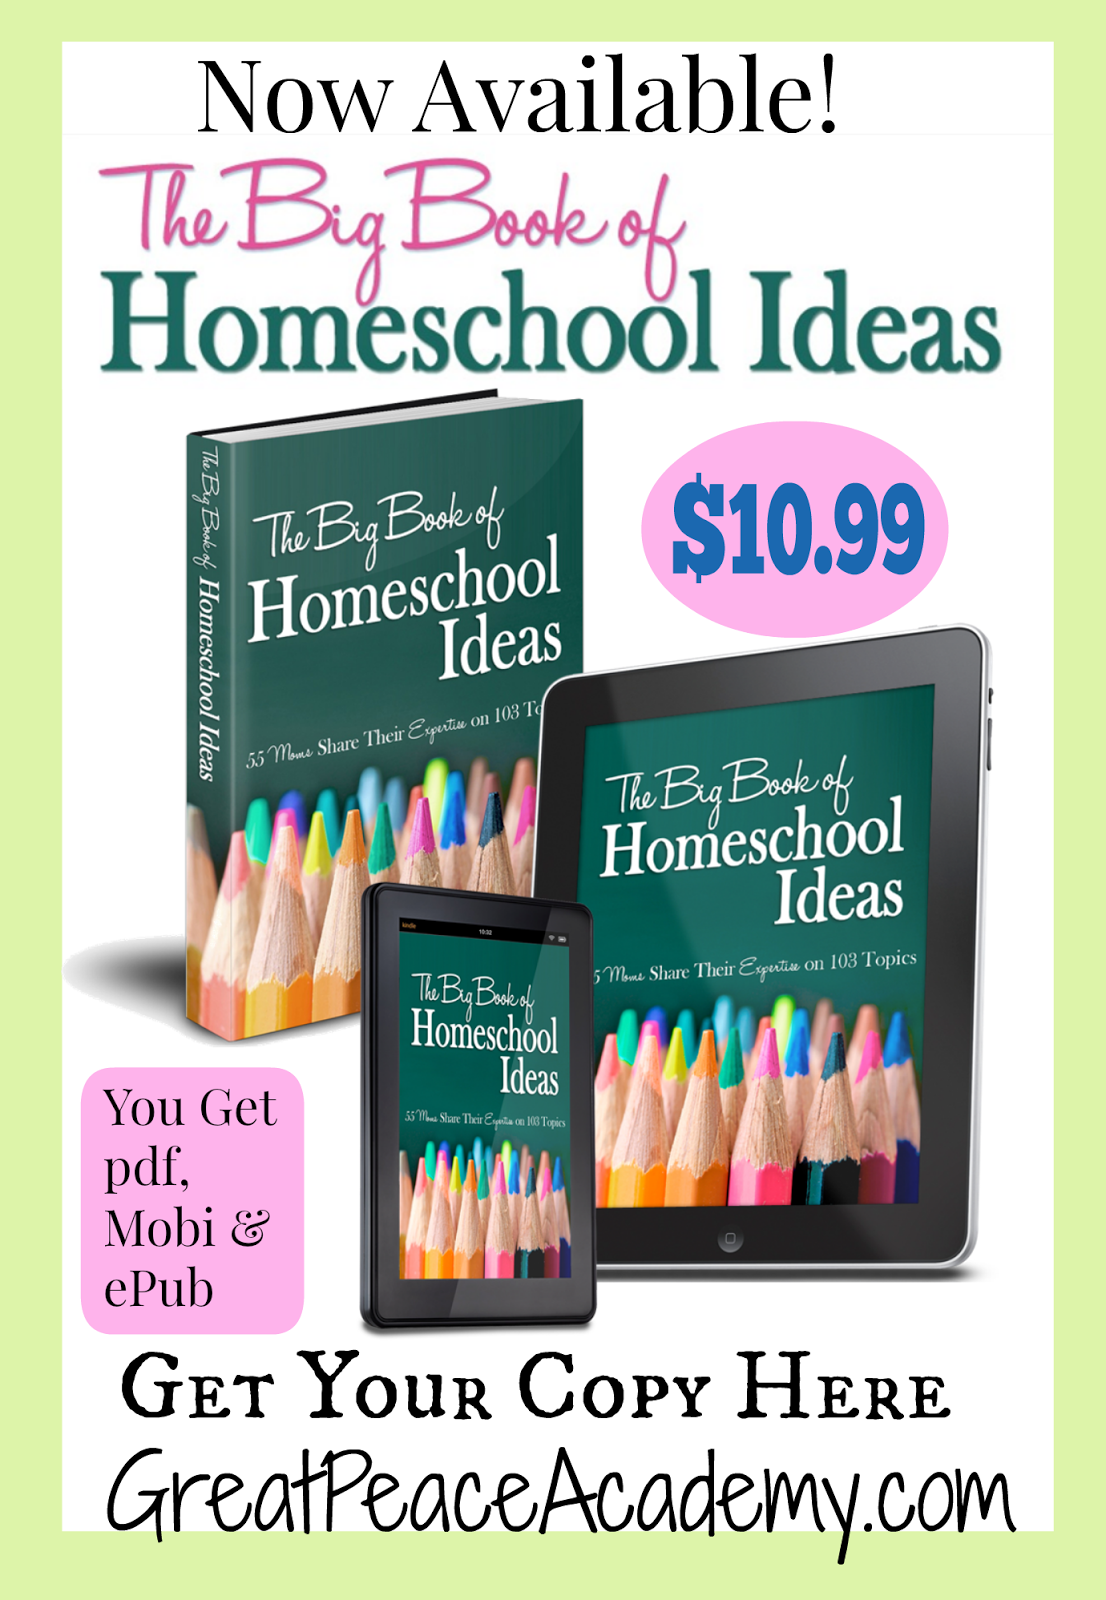 The Big Book of Homeschool Ideas 55 Moms Share Their Expertise on 103 Topics